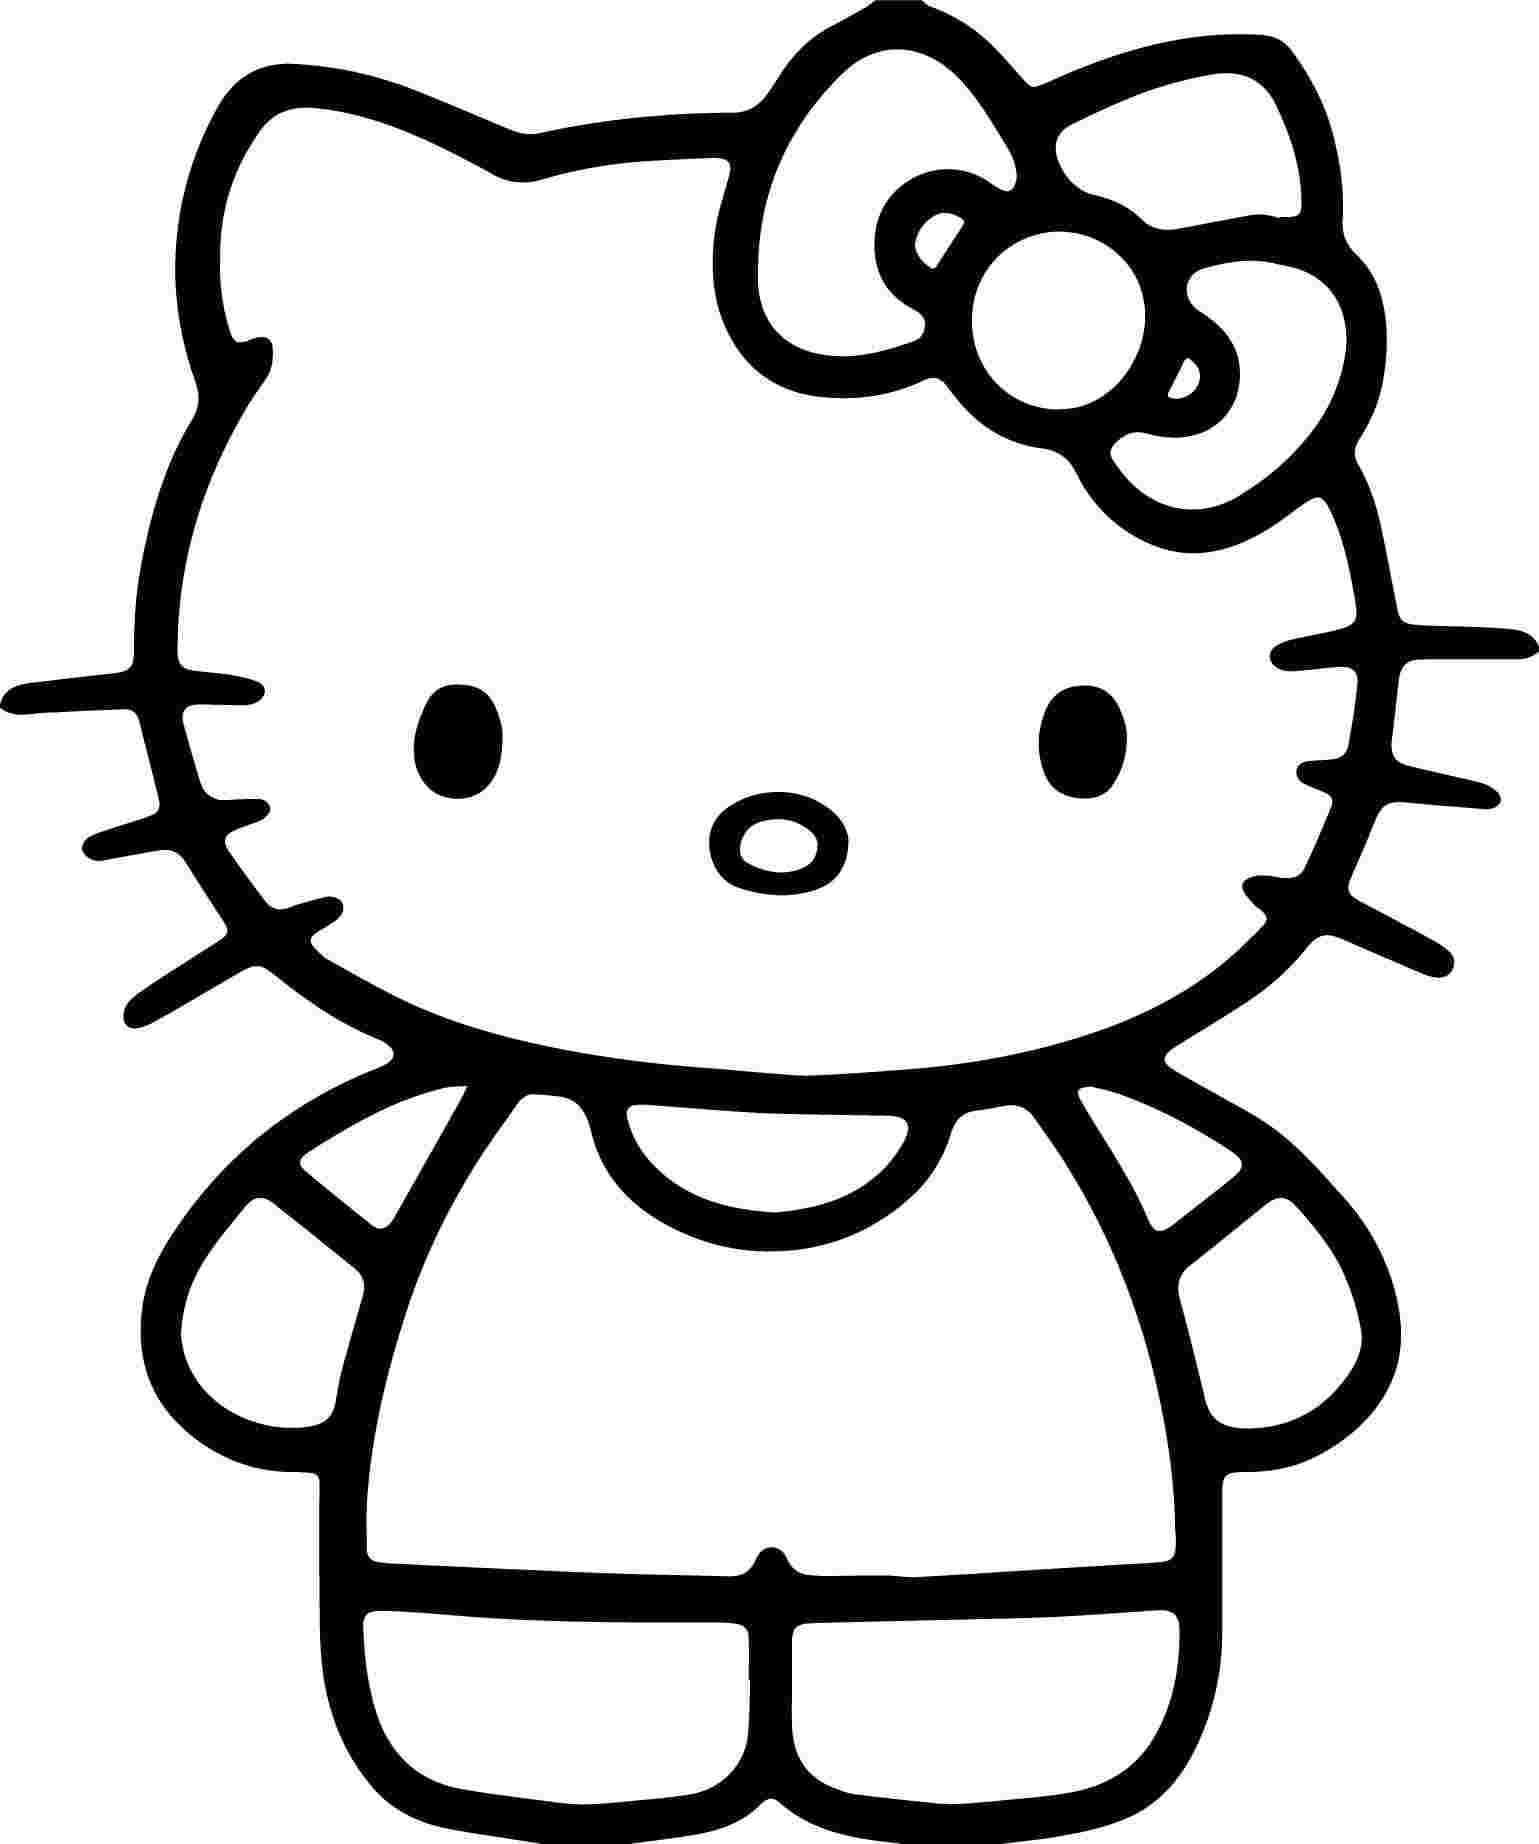 coloring pictures for 2 year olds coloring pages for 2 to 3 year old kids download them or pictures coloring for olds year 2